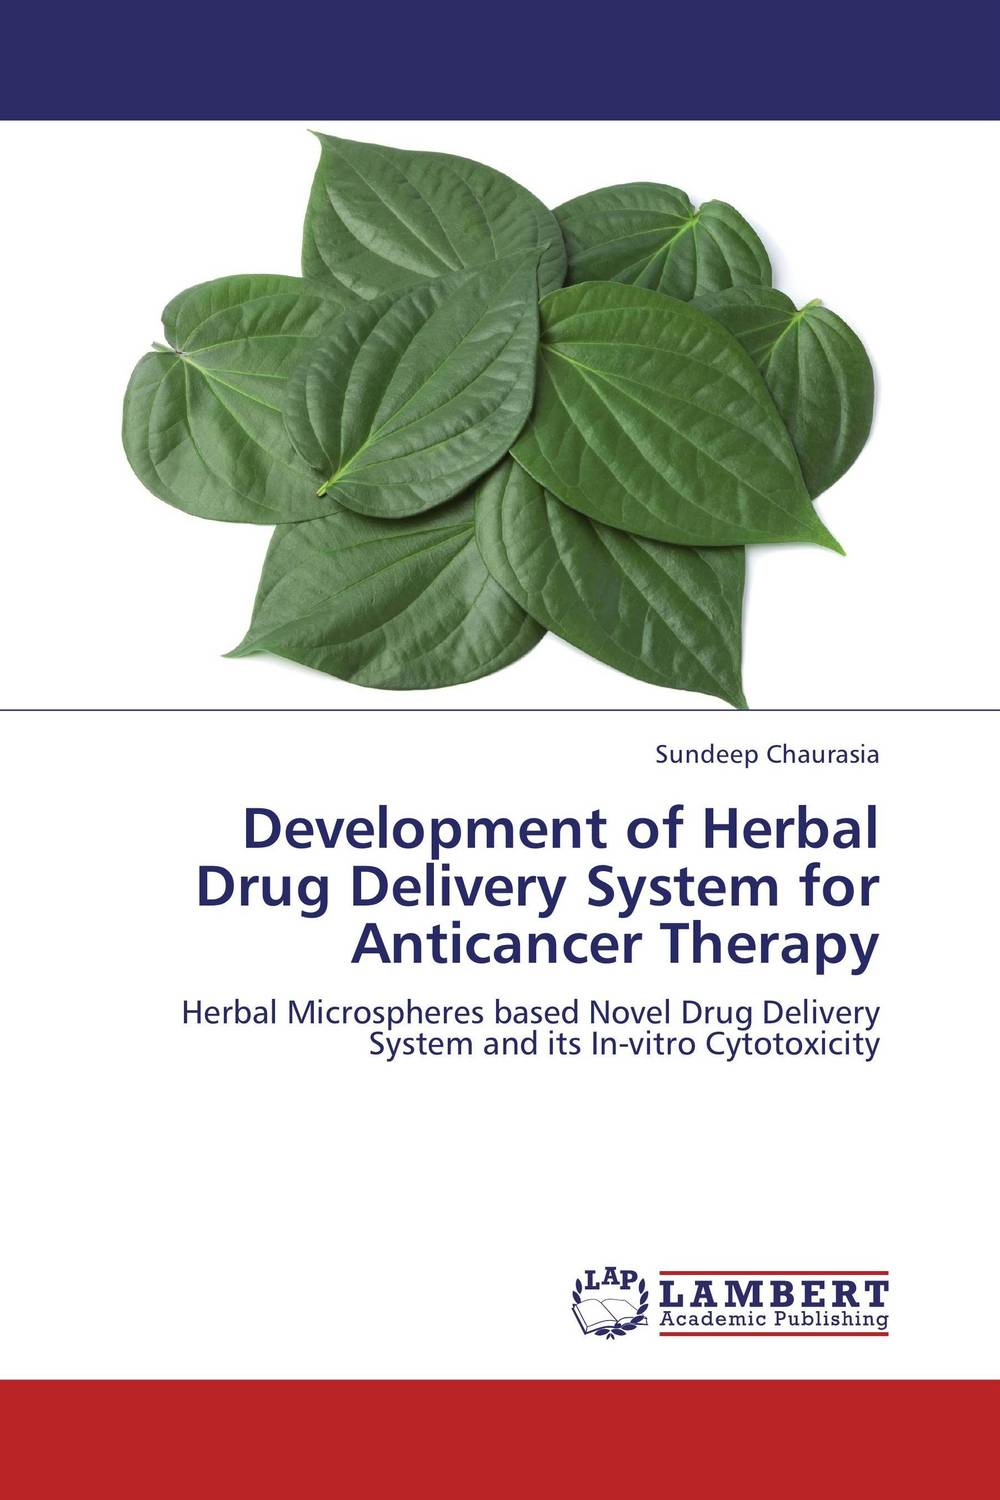 Development of Herbal Drug Delivery System for Anticancer Therapy vrunda shah and vipul shah herbal therapy for liver disease